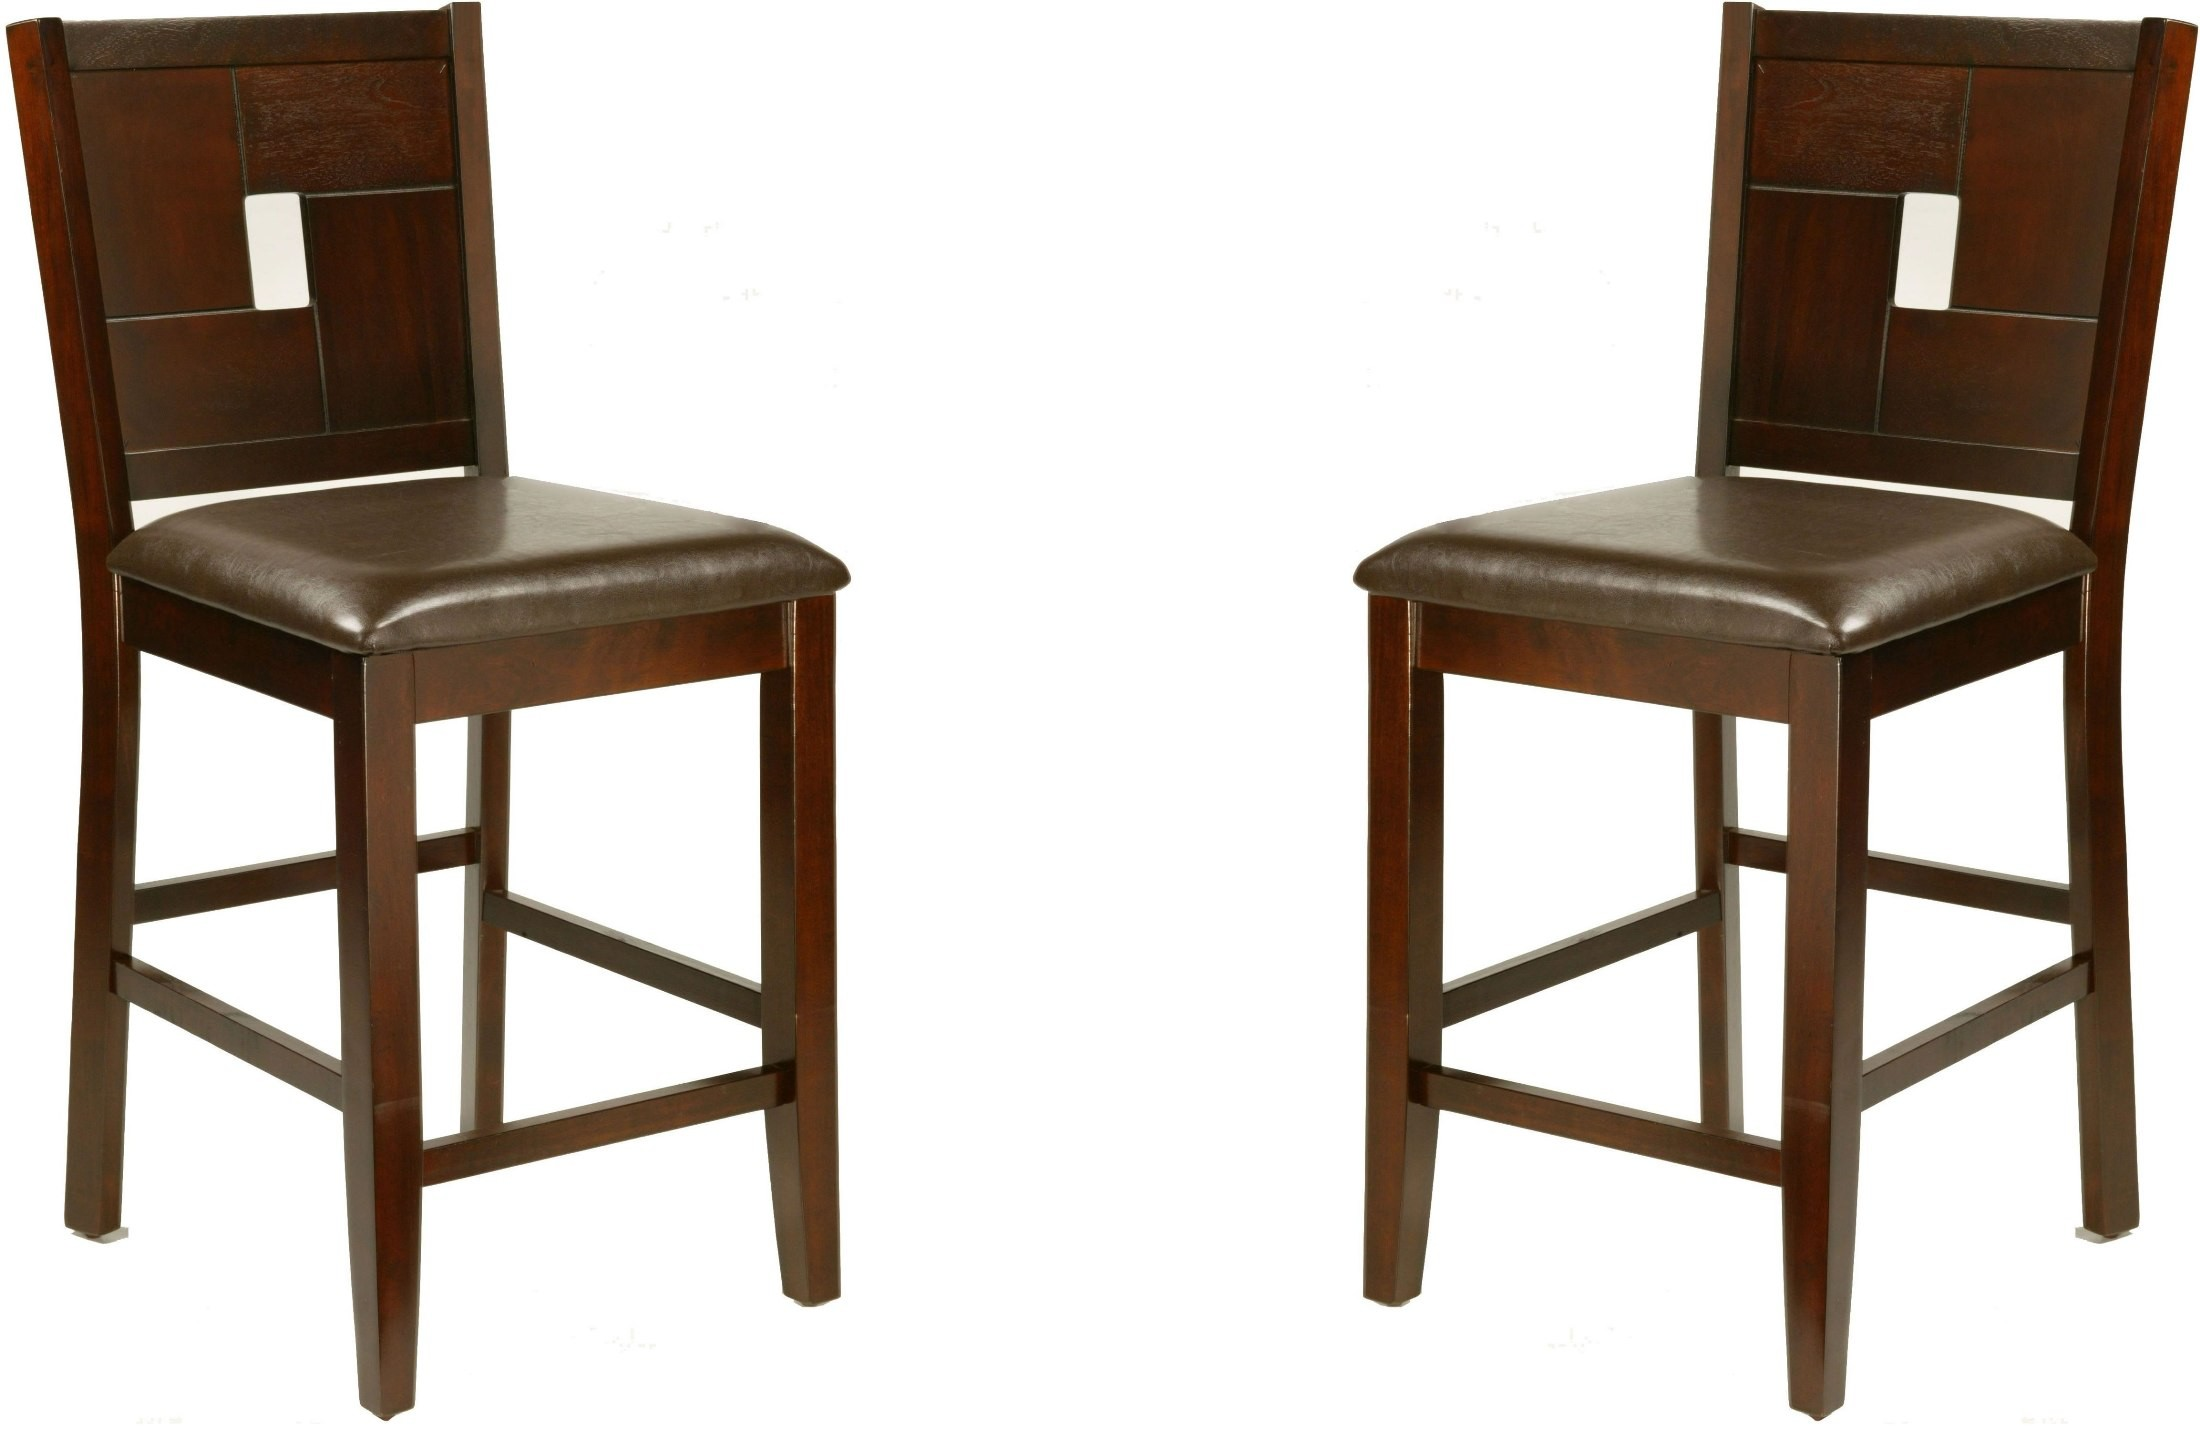 Counter Height Espresso Chairs : Lakeport Espresso Counter Height Pub Chair Set of 2, 552-02, Alpine